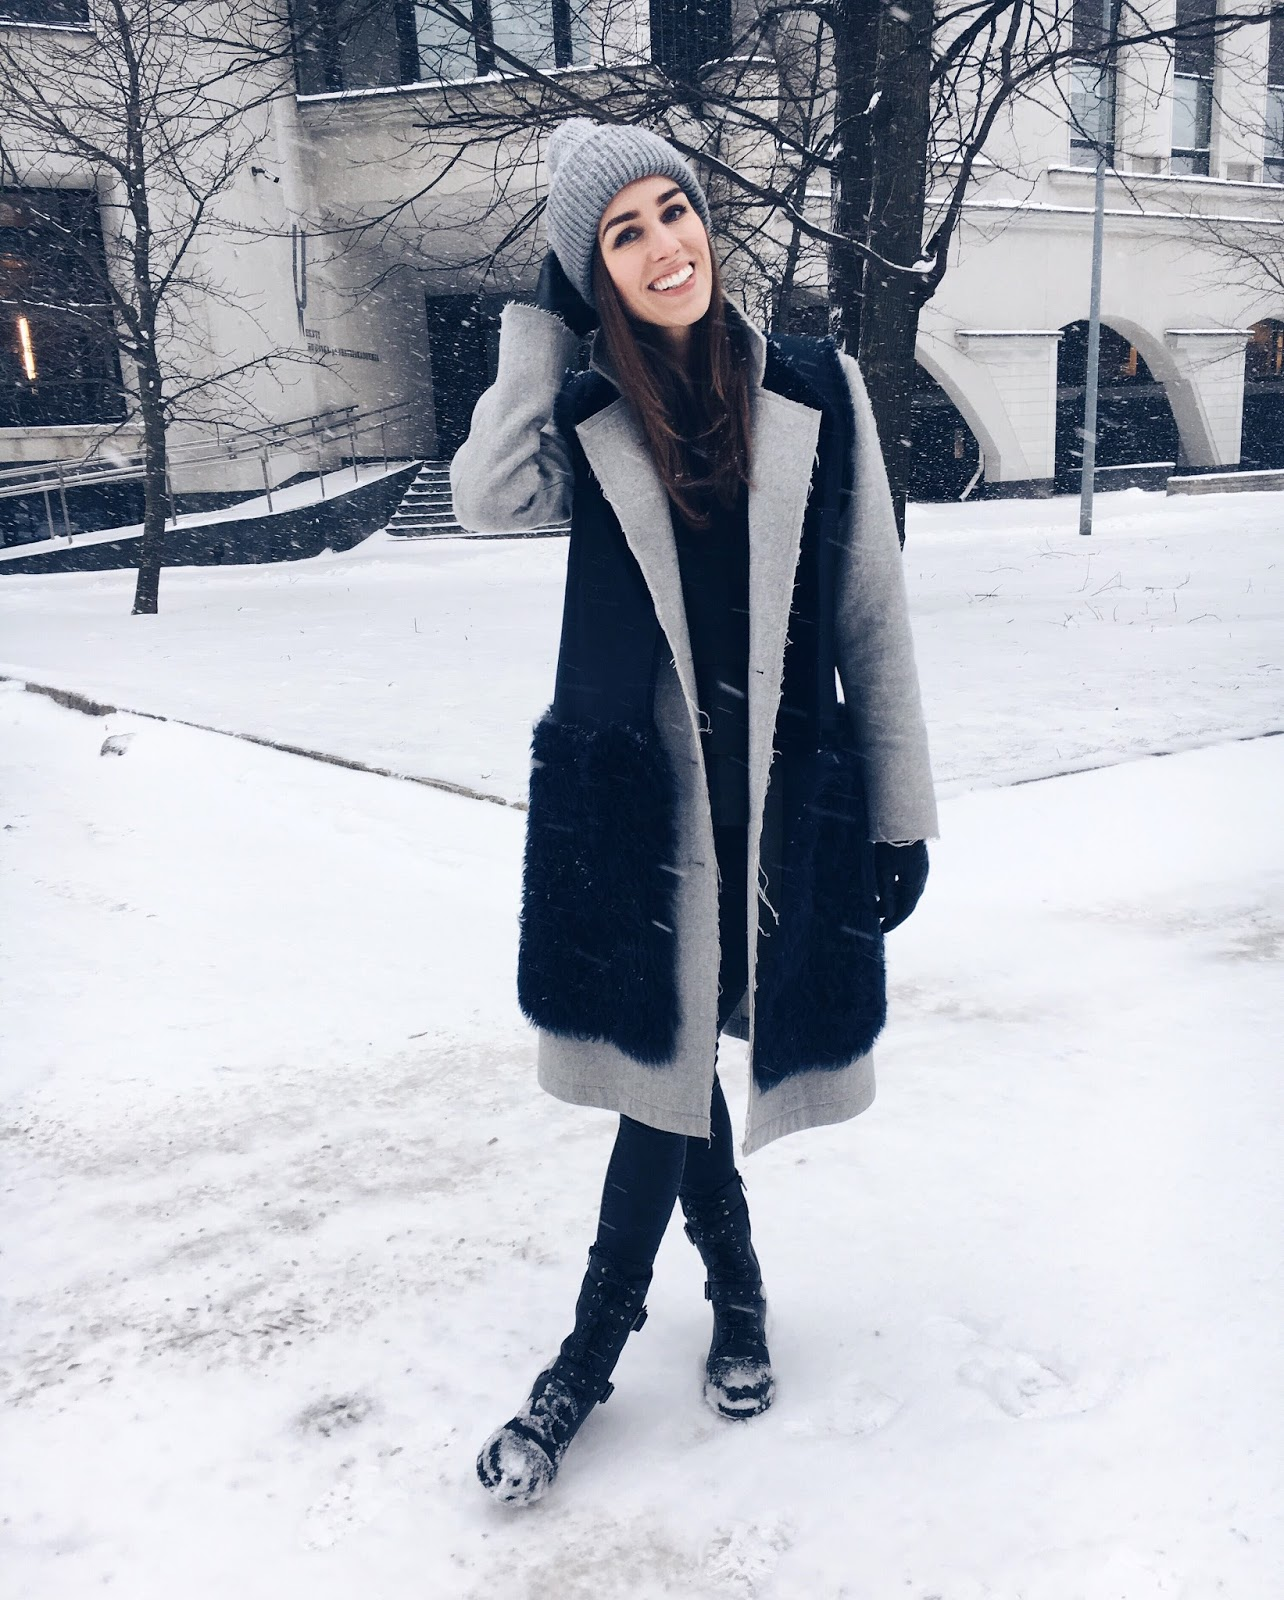 kristjaana mere grey coat beanie winter snow outfit